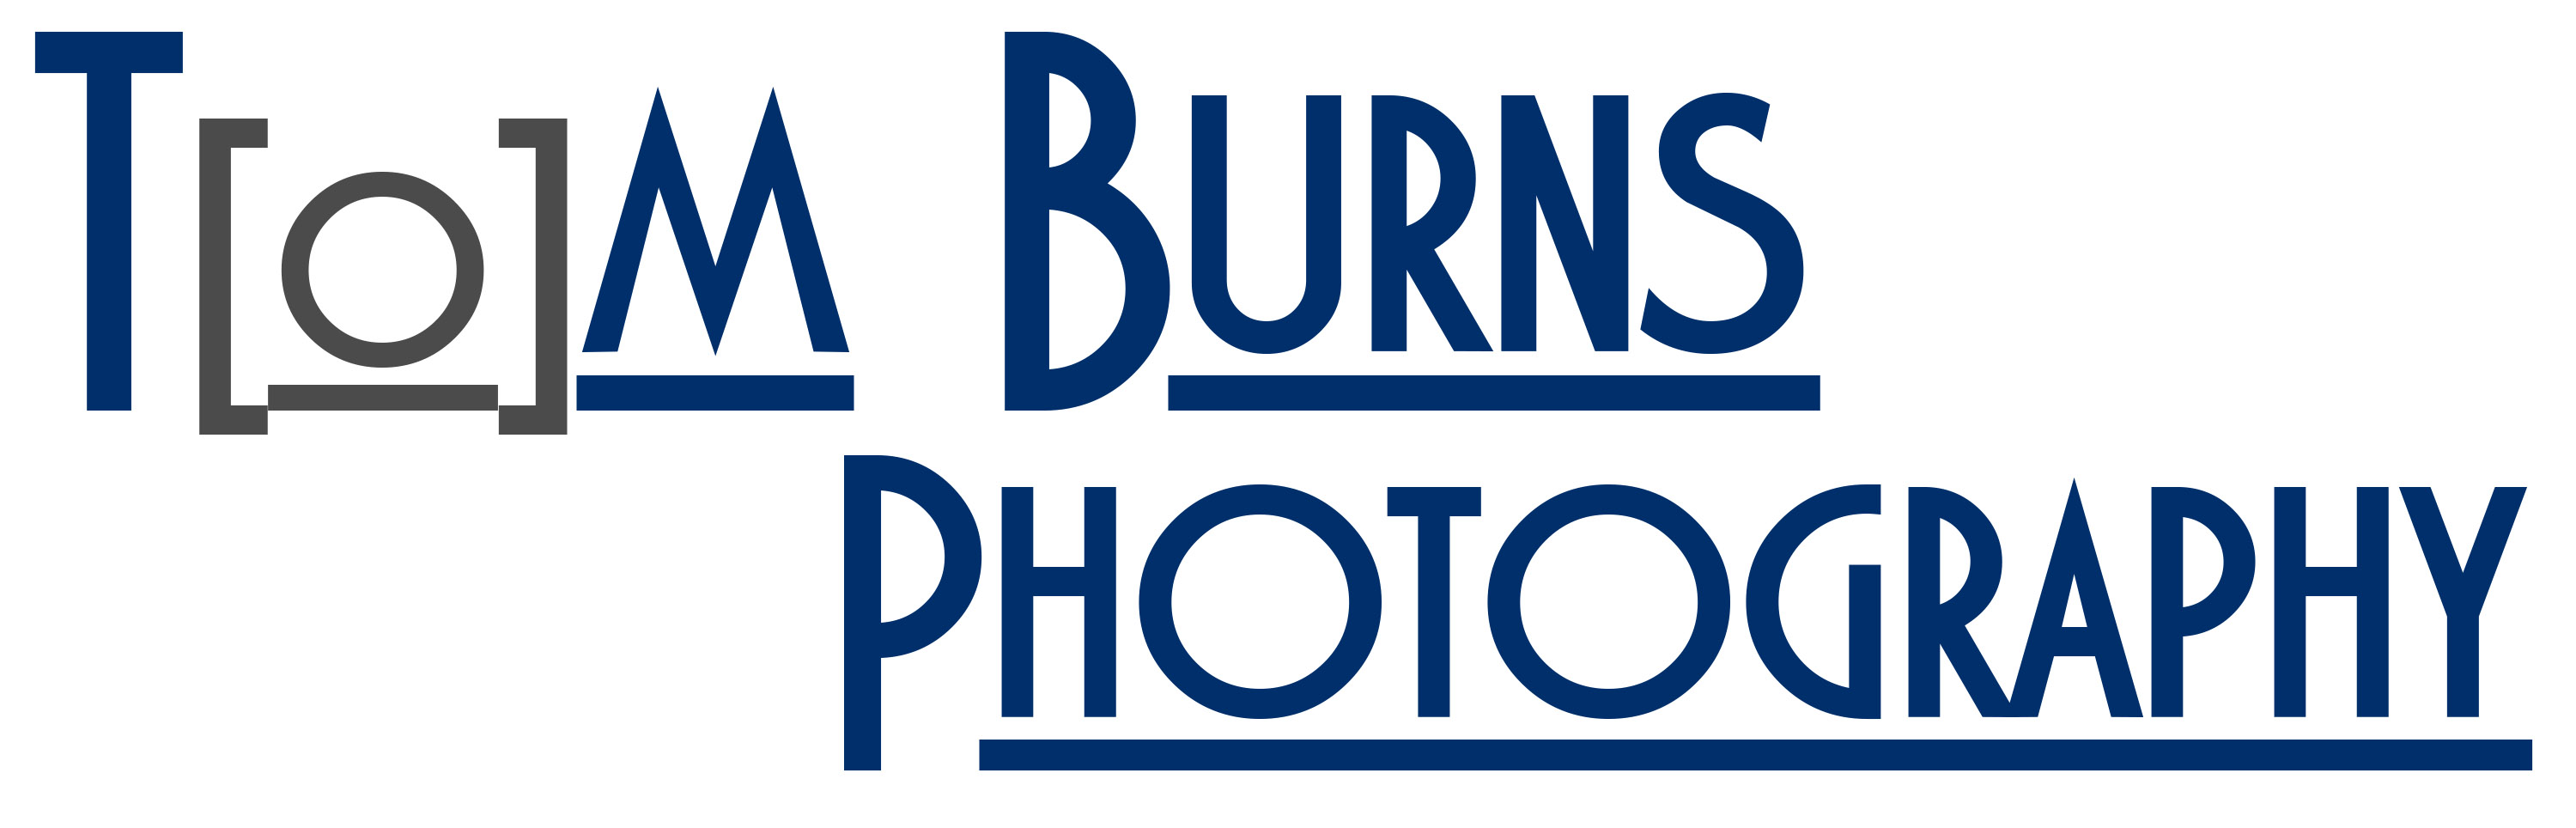 Tom Burns Photography